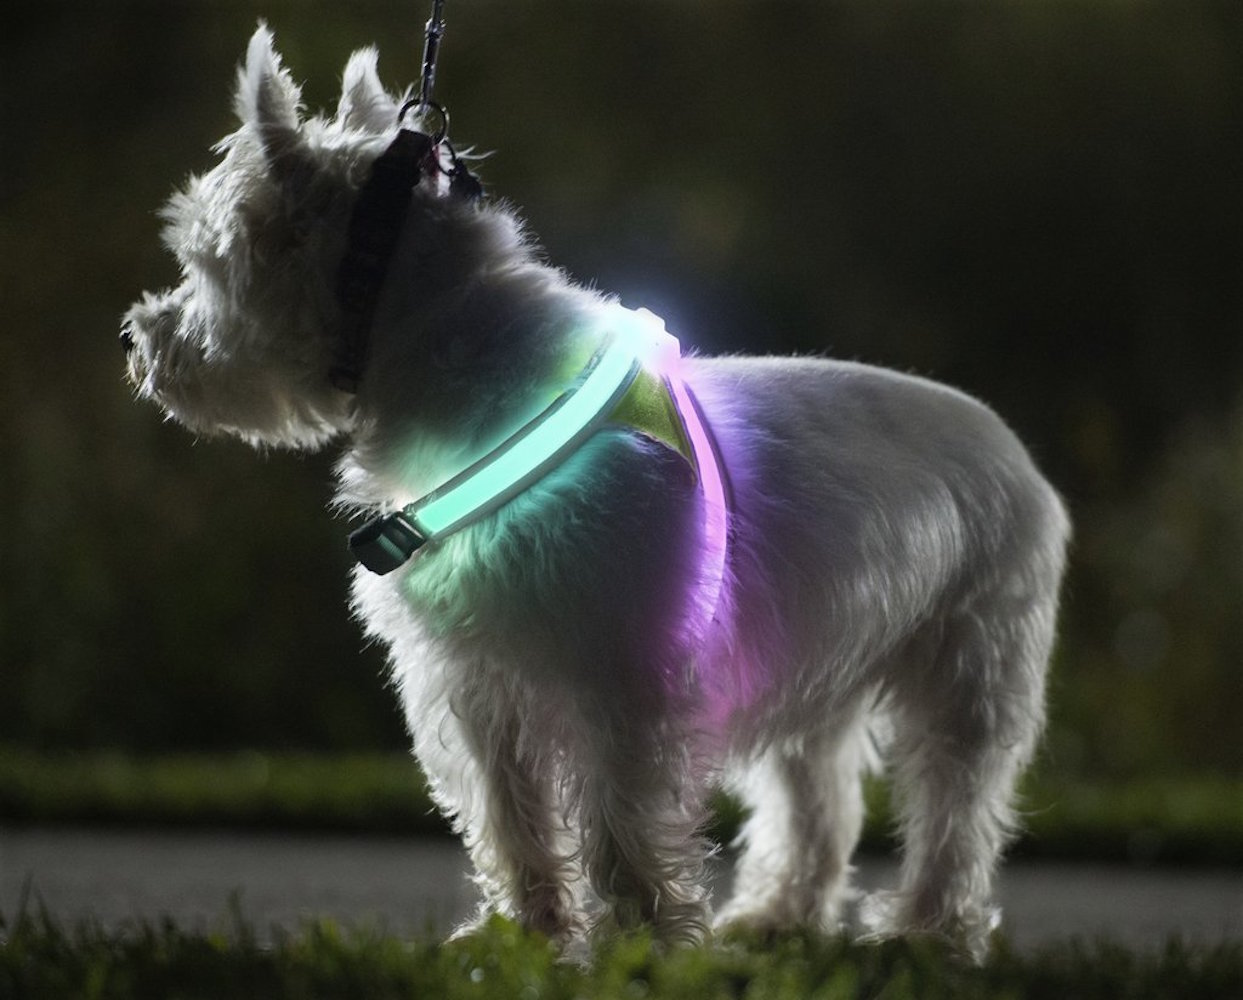 noxgear-lighthound-illuminated-dog-vest-03